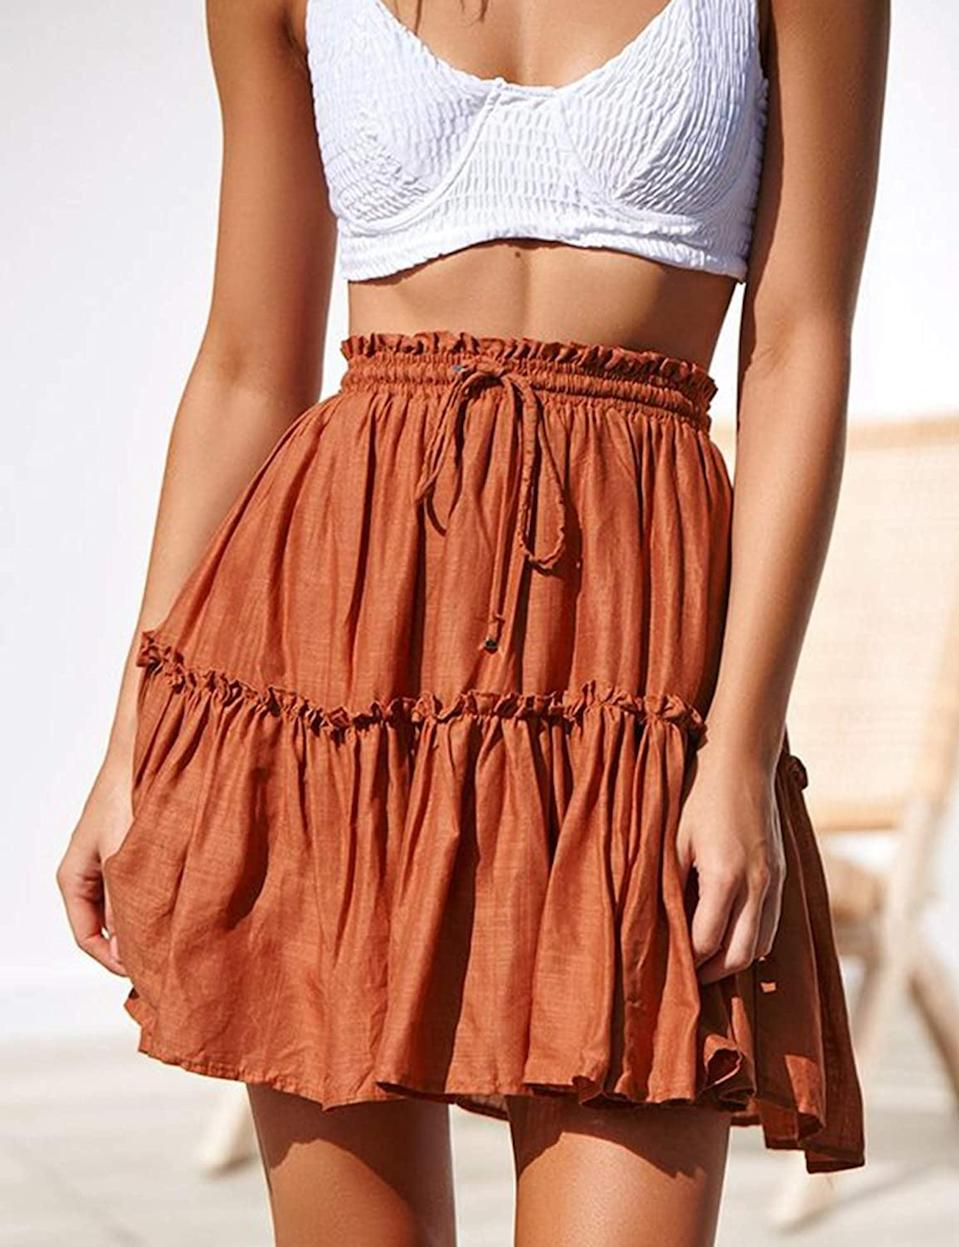 <p>Spend hot days in this lightweight <span>Relipop Flared Short Skirt</span> ($16-$20).</p>